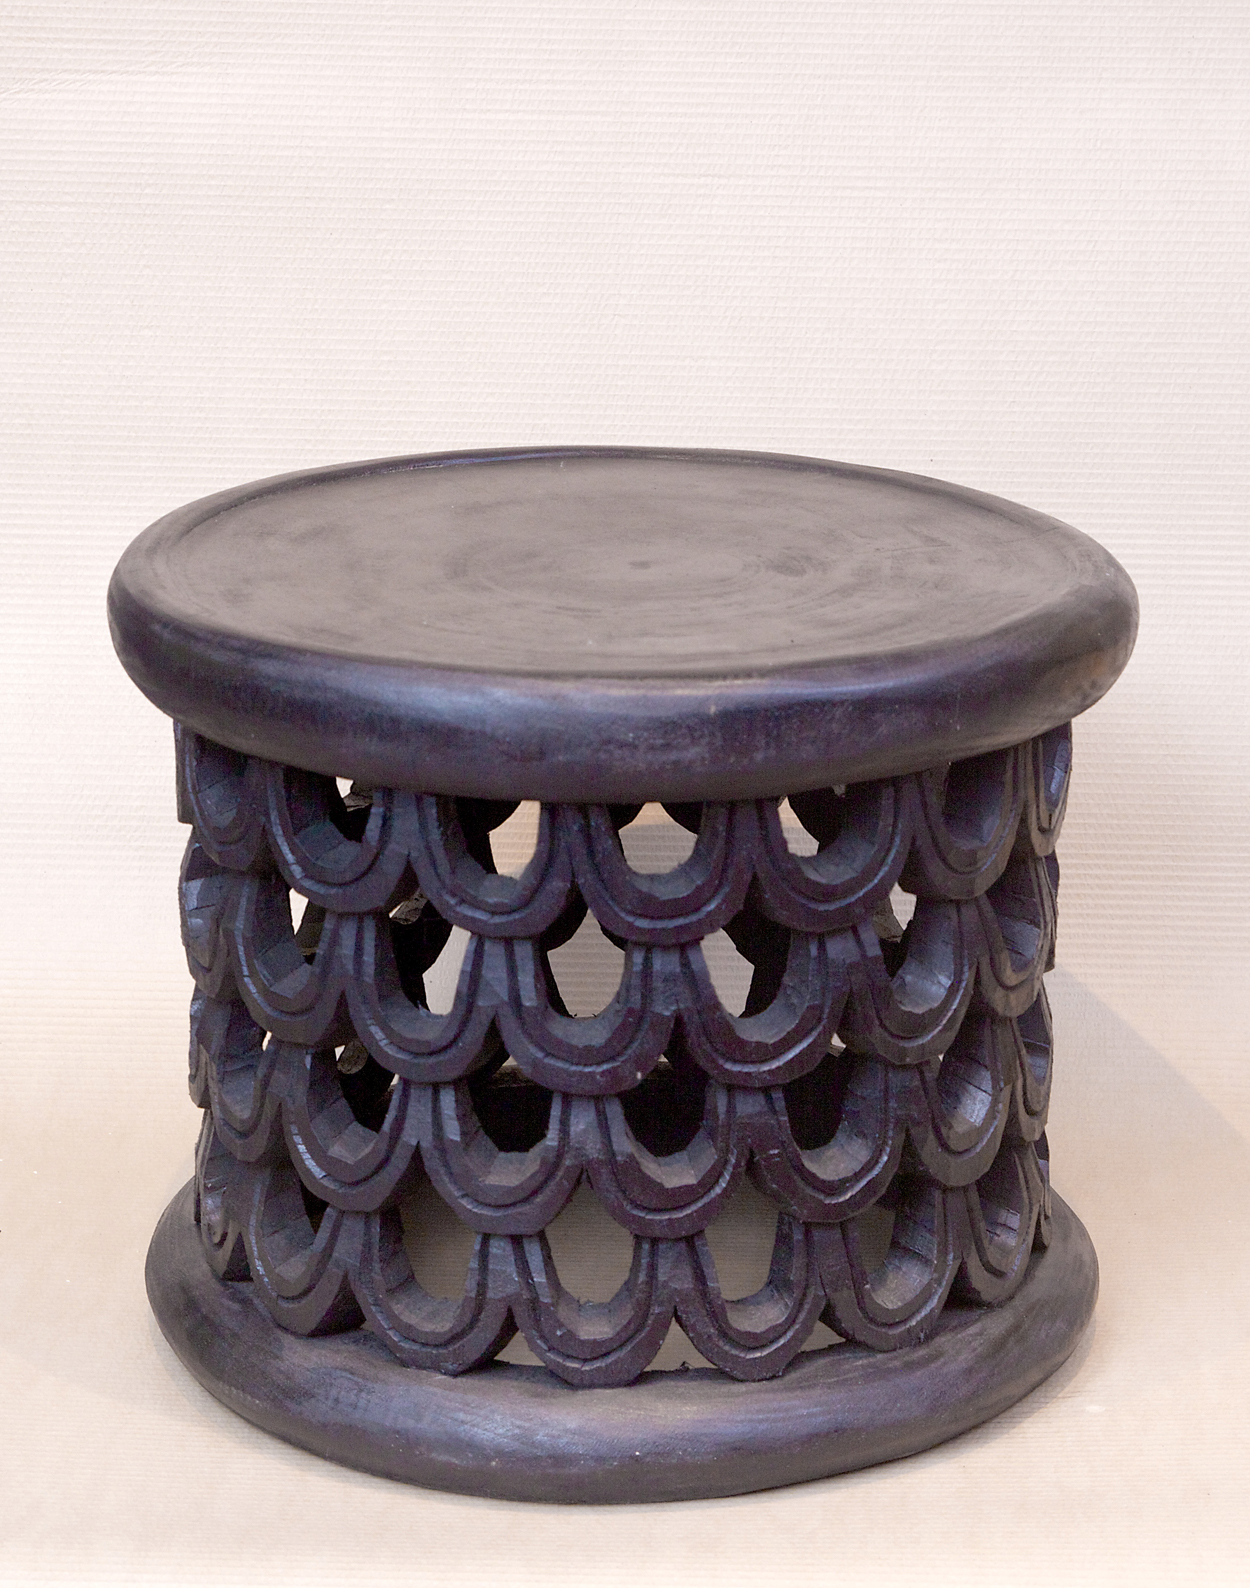 Code: AFR4779 Cameroon Stool Size: 55 X 55 X 44 Cm